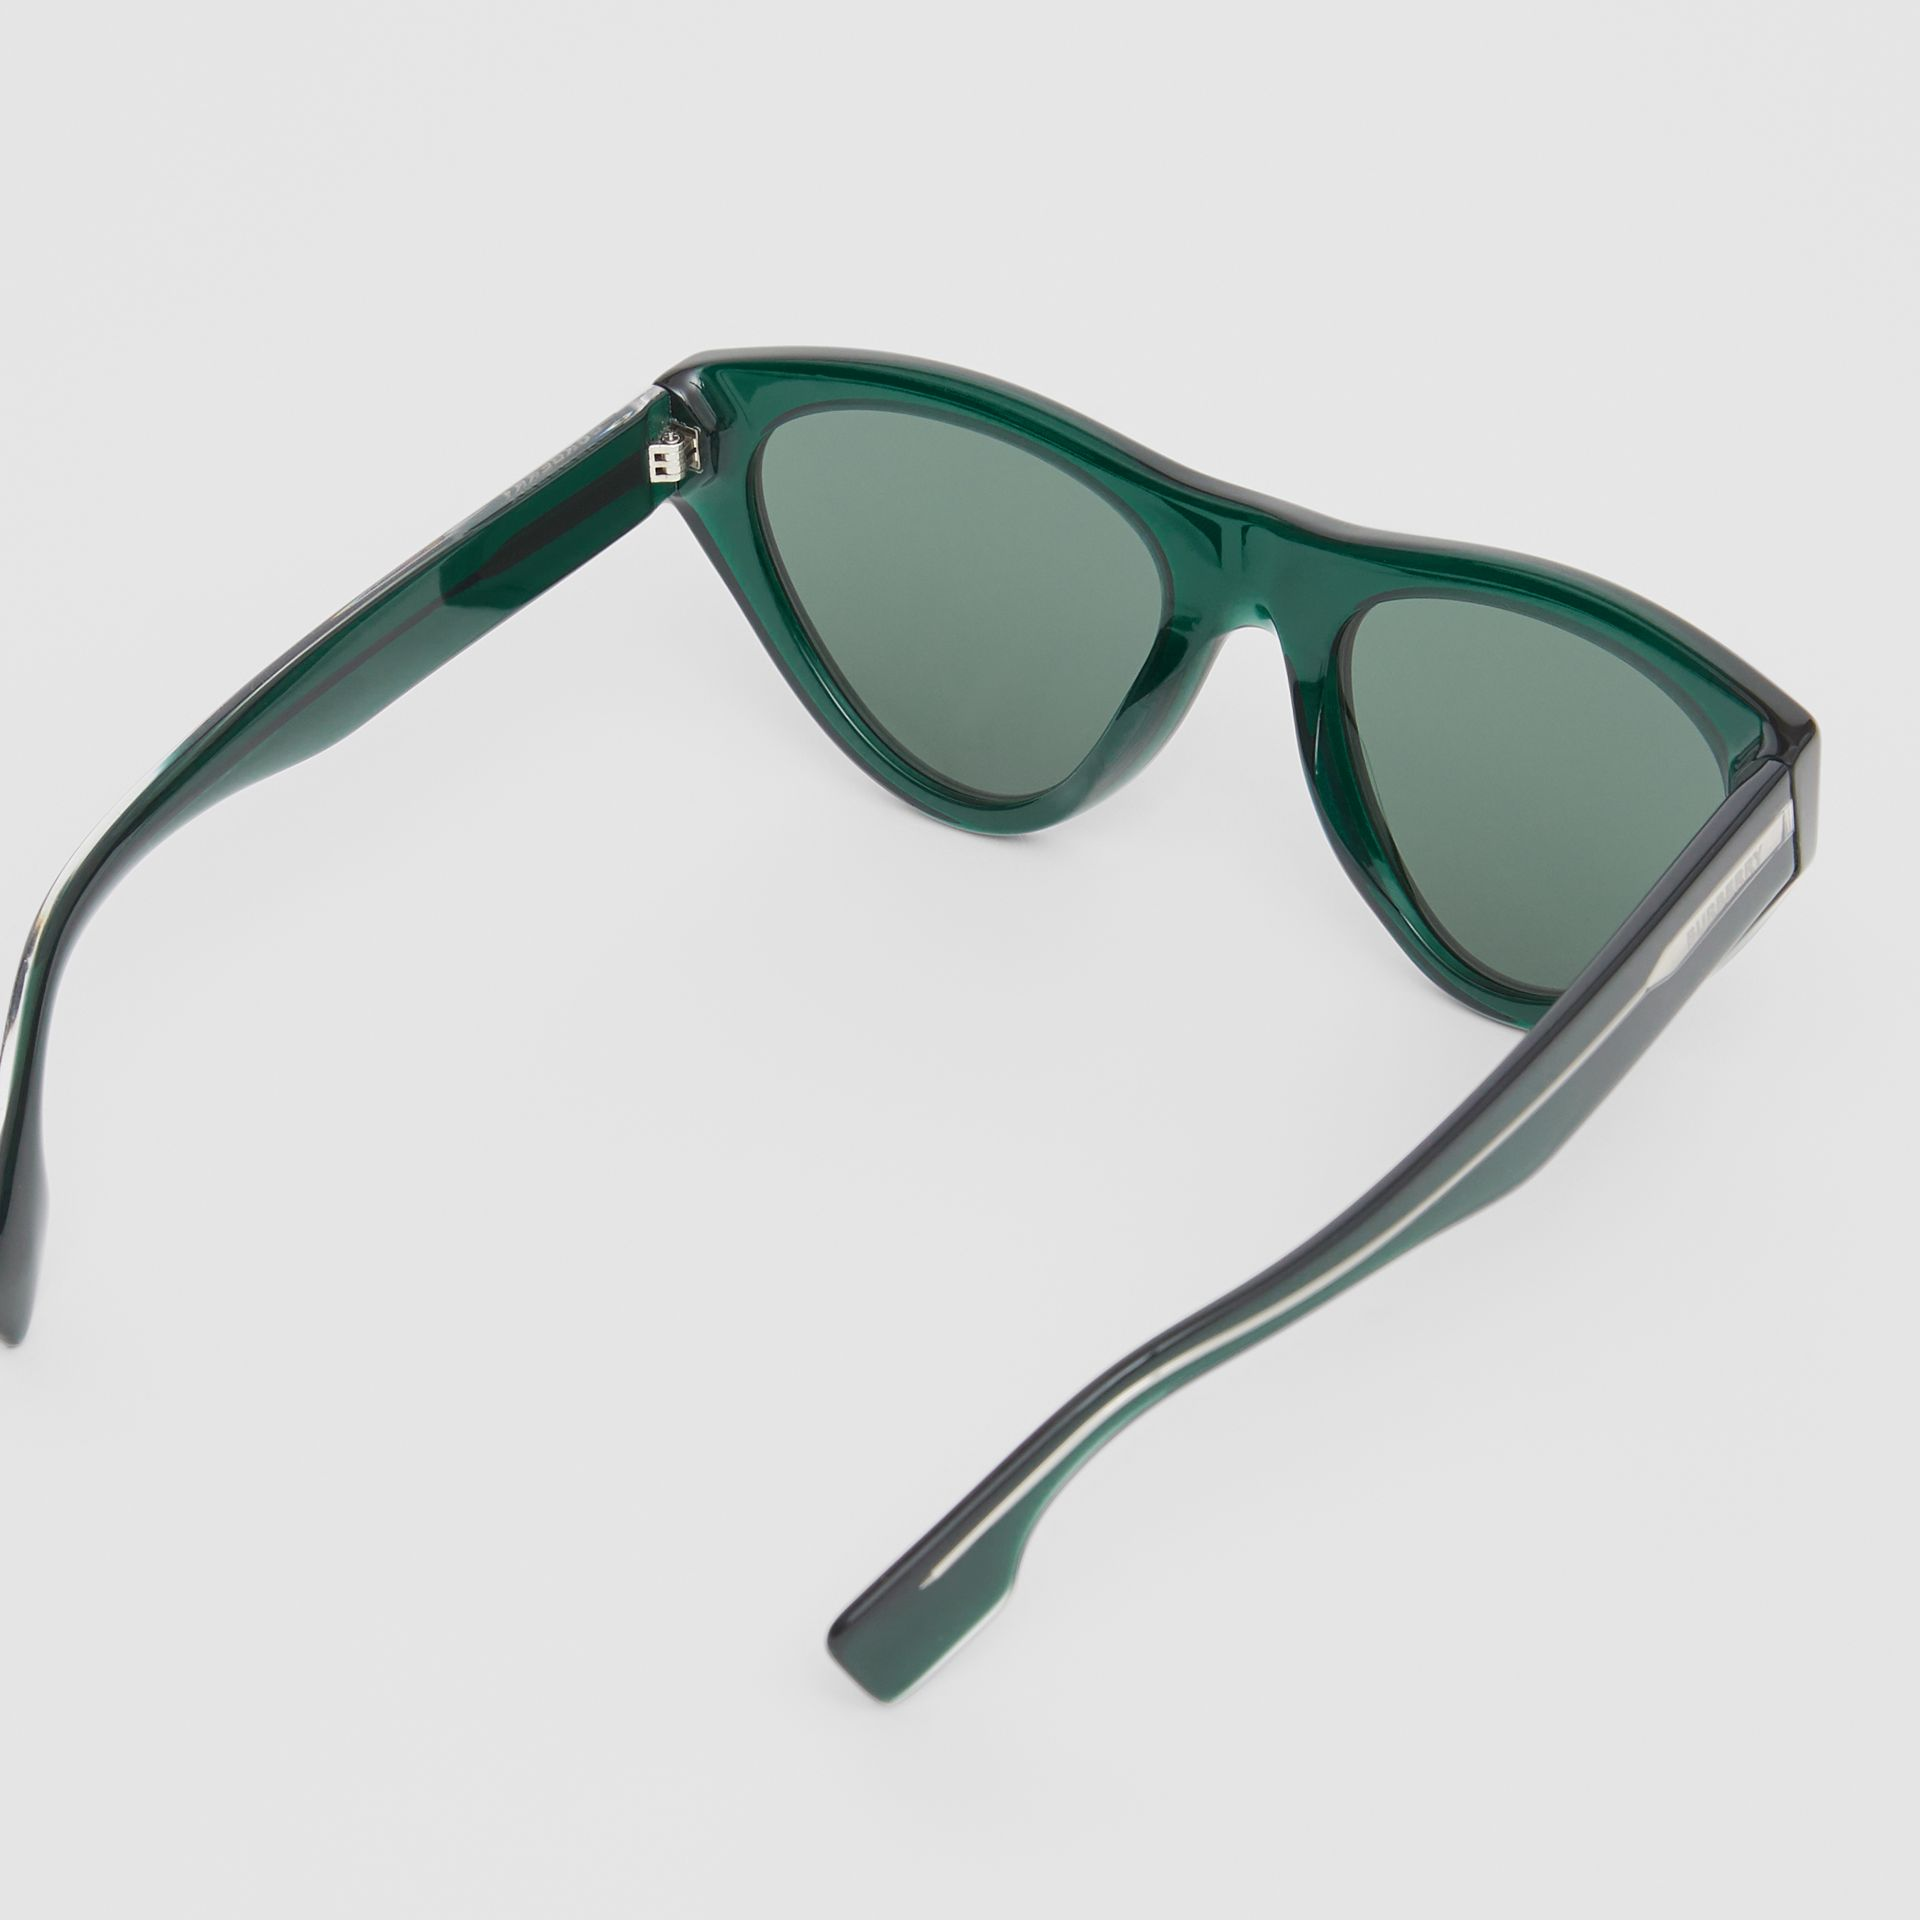 Triangular Frame Sunglasses in Green - Women | Burberry - gallery image 4